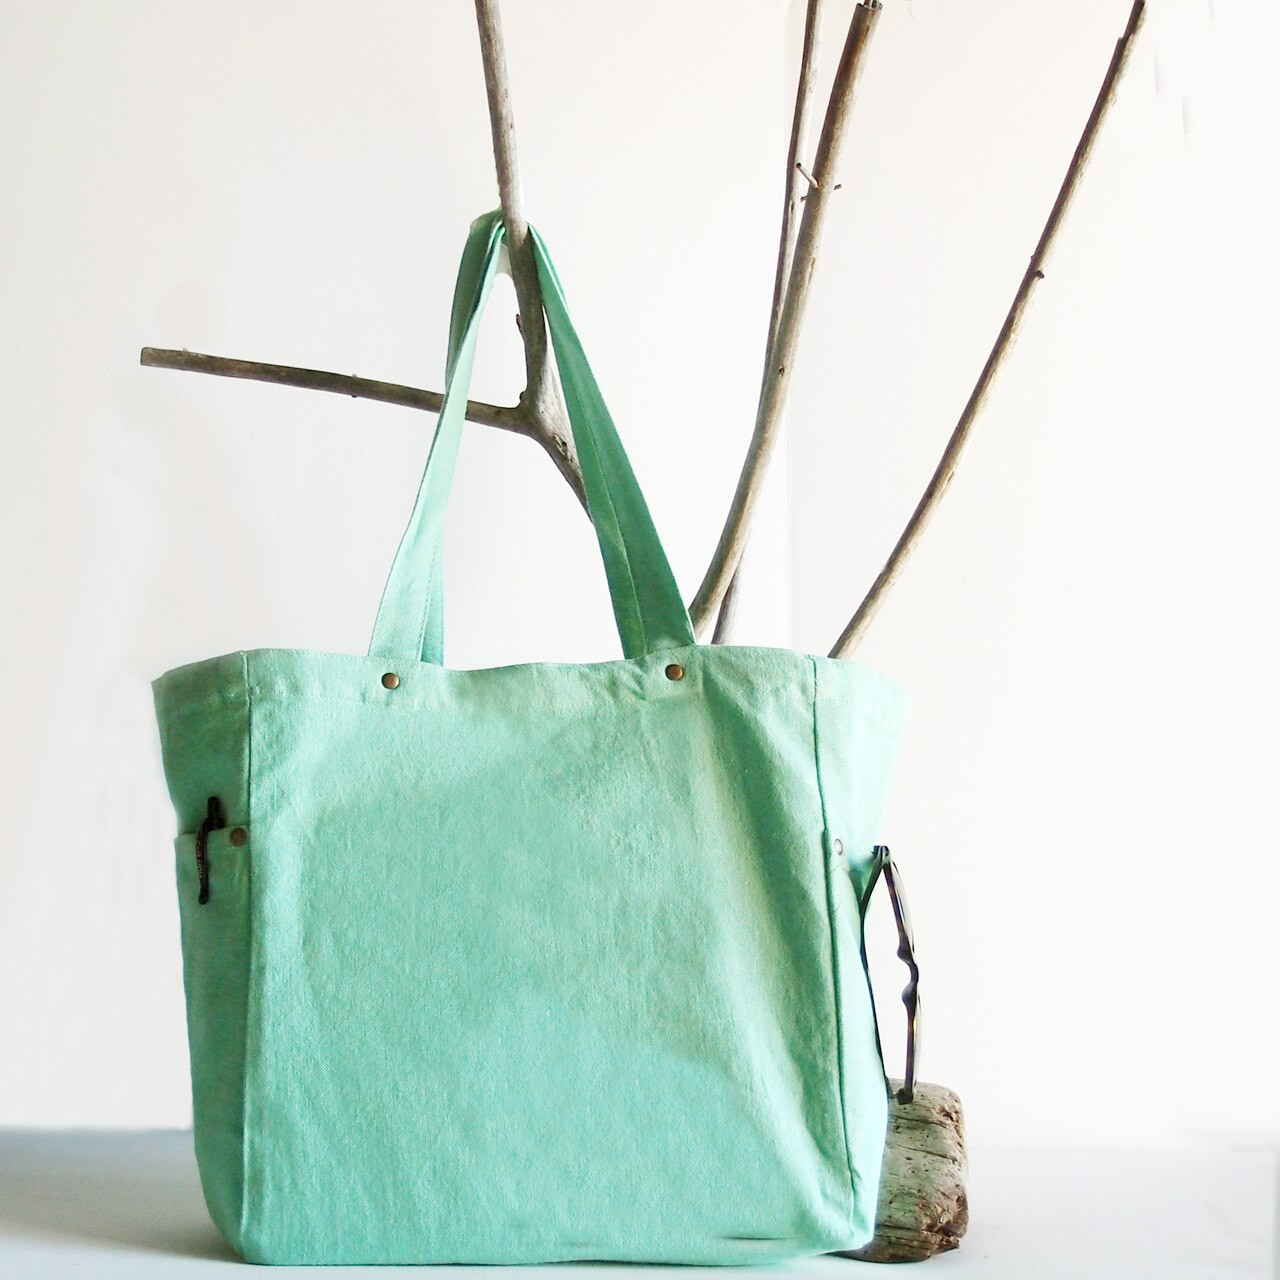 Wholesale Canvas Tote Bags, Washed Canvas Tote Bag with Side Pockets Pistachio B798-77 | Packaging Decor